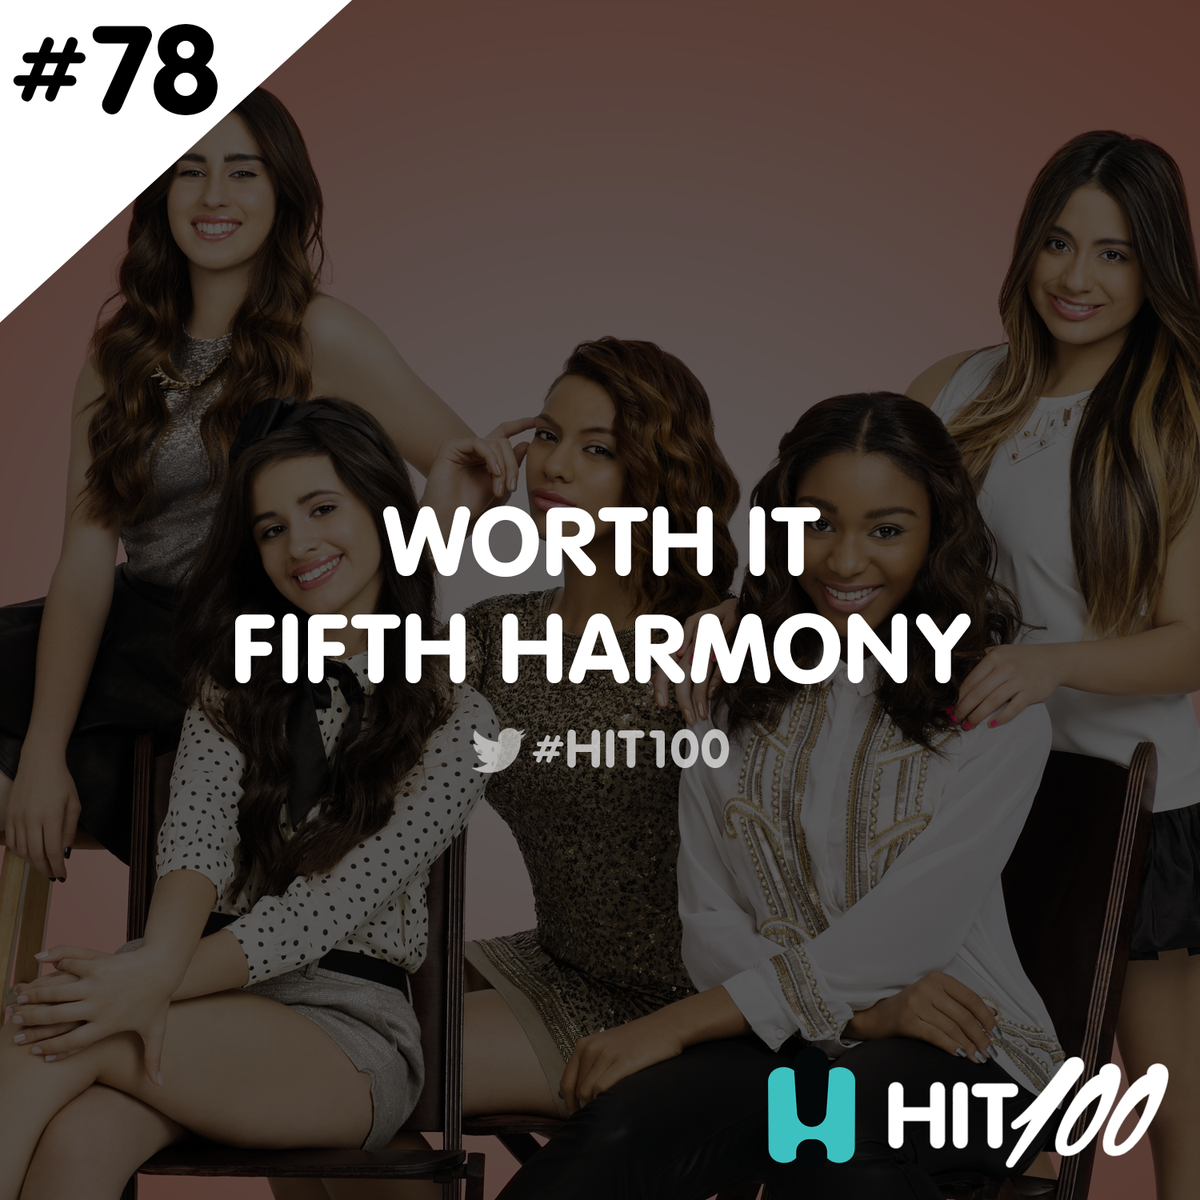 The biggest hits of 2015! 78 on the #hit100 is @FifthHarmony WORTH IT  - @englishchris https://t.co/1RZT7Vtn2P